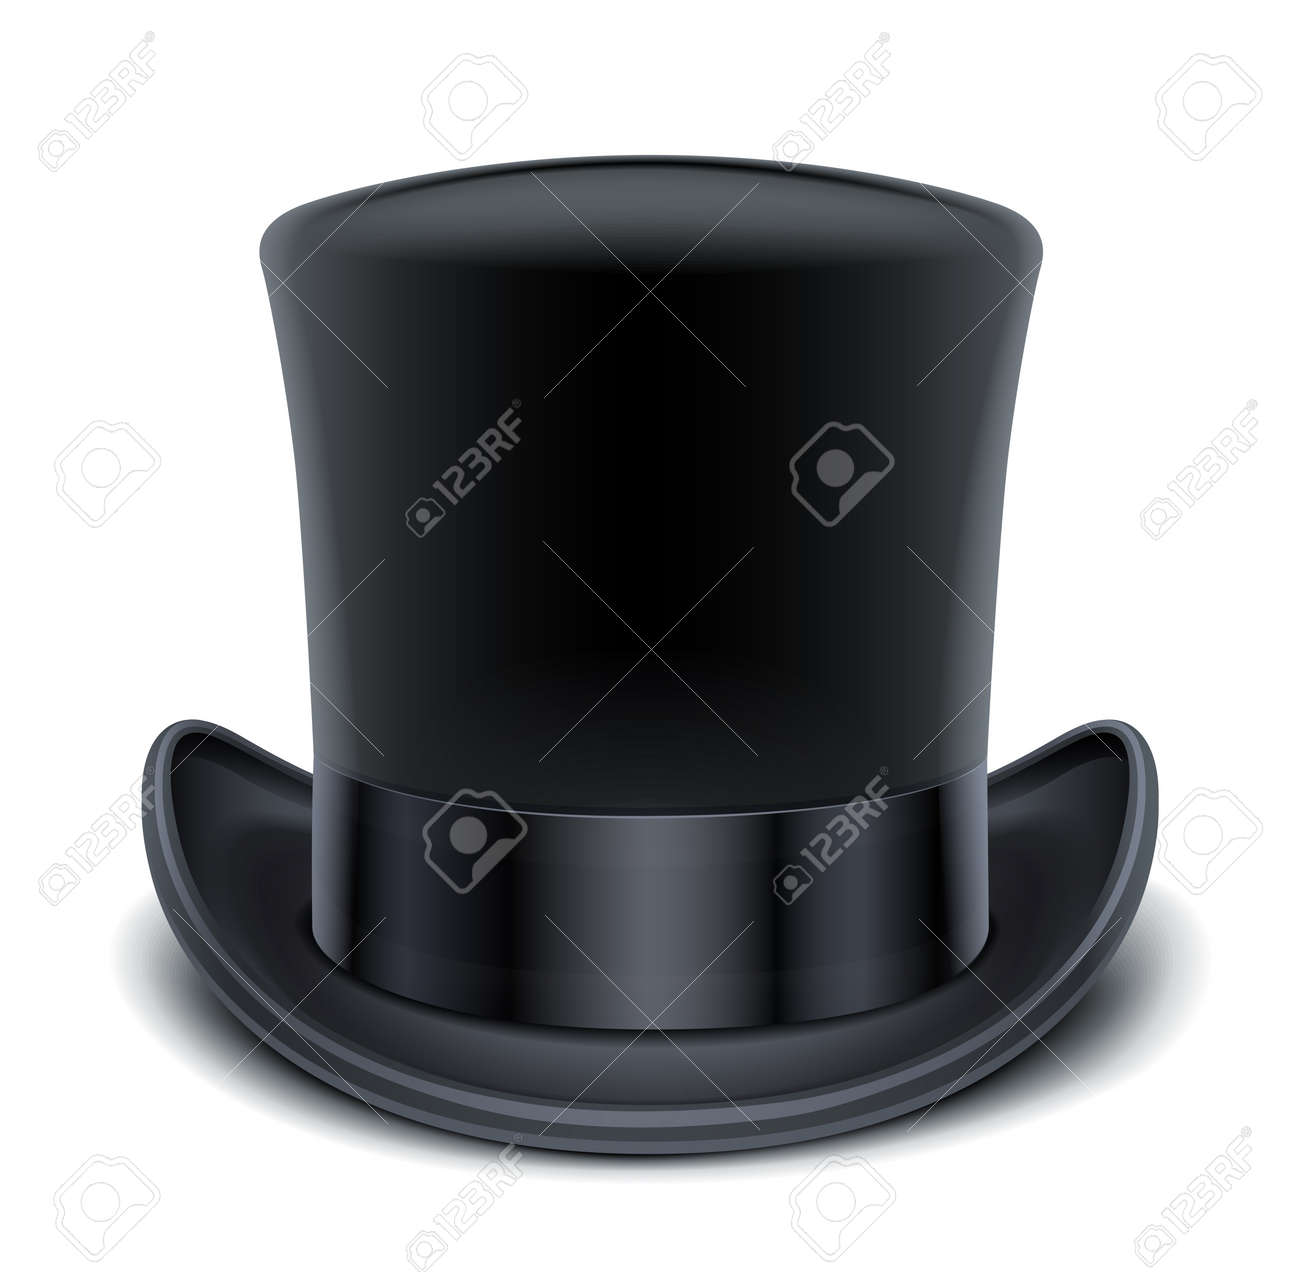 c2d2e08d9 black top hat illustration isolated on white background EPS10...